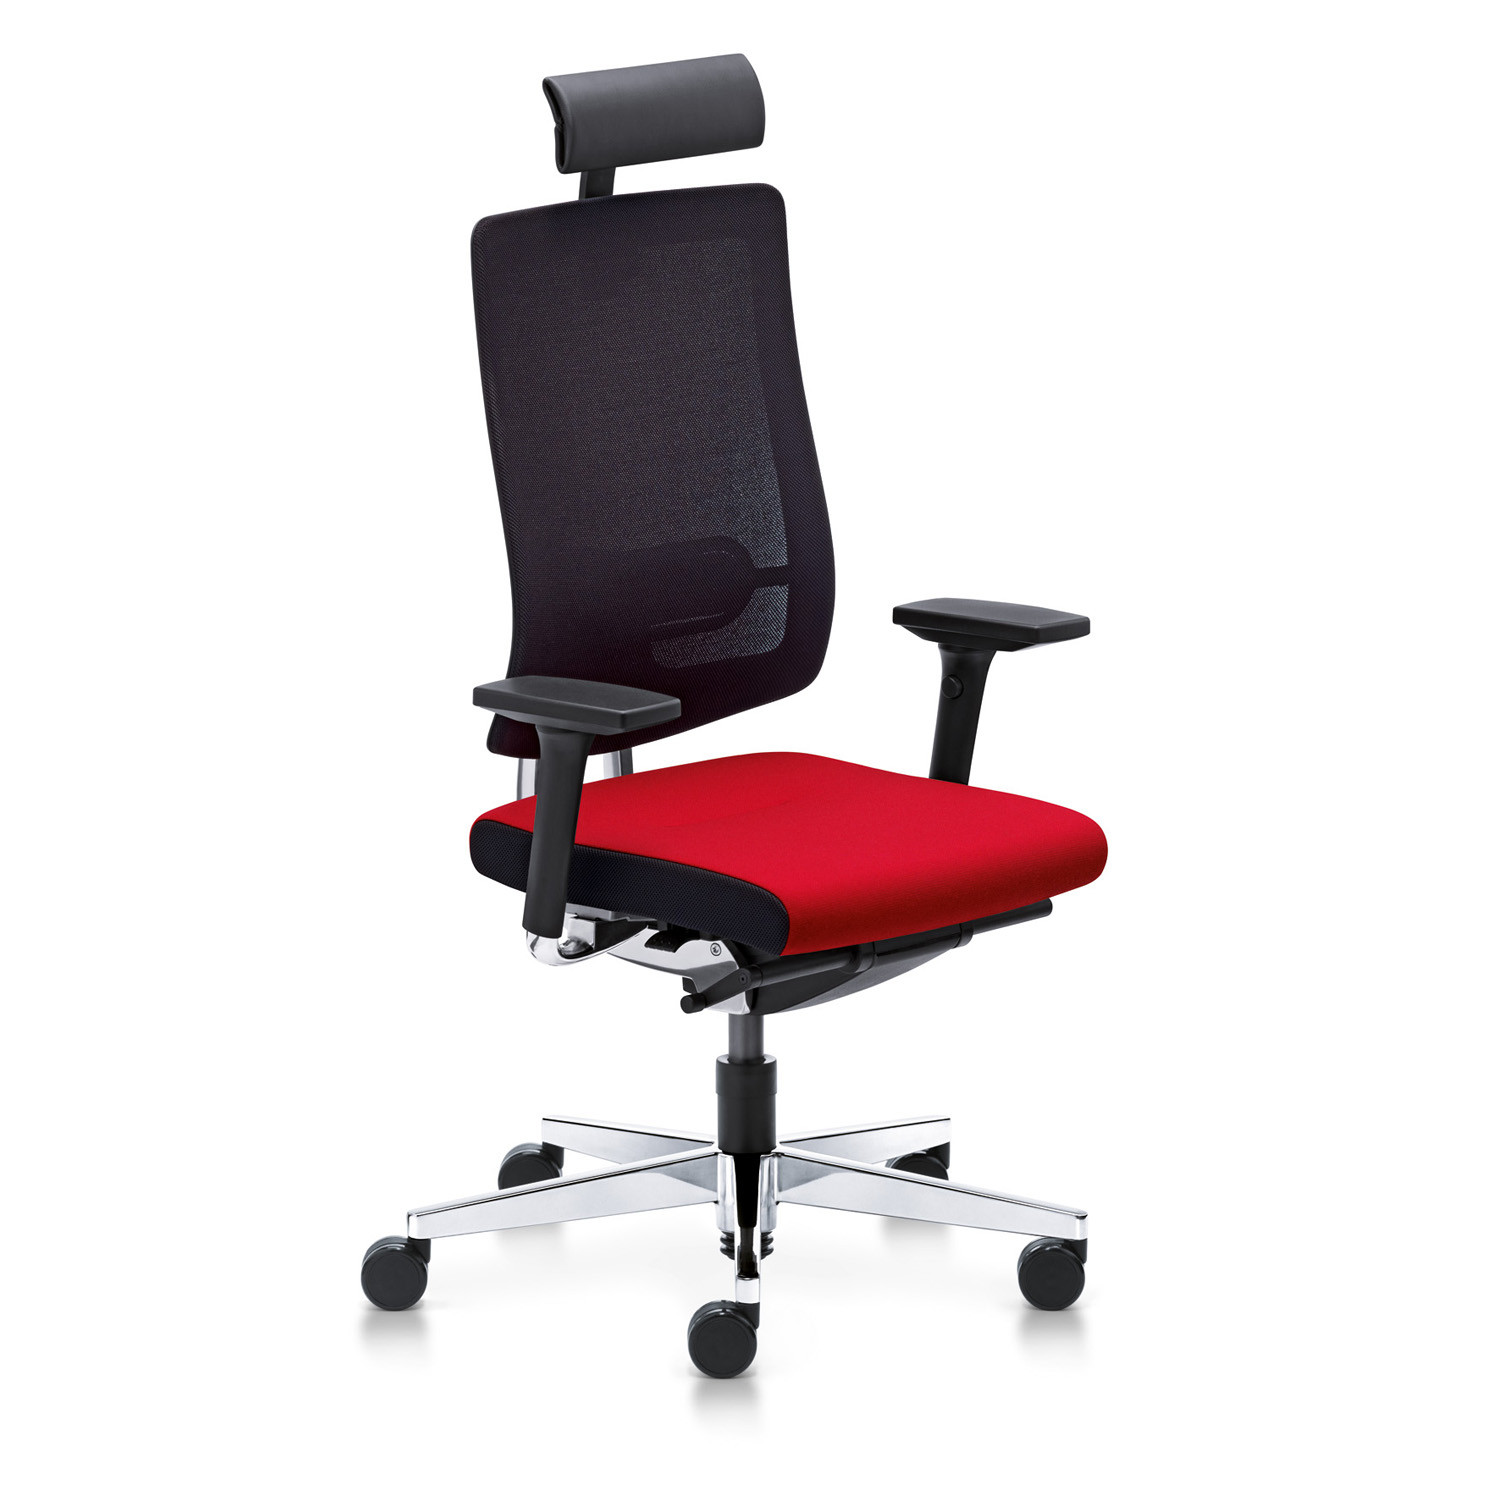 Black Dot Net Executive Swivel Chair with headrest